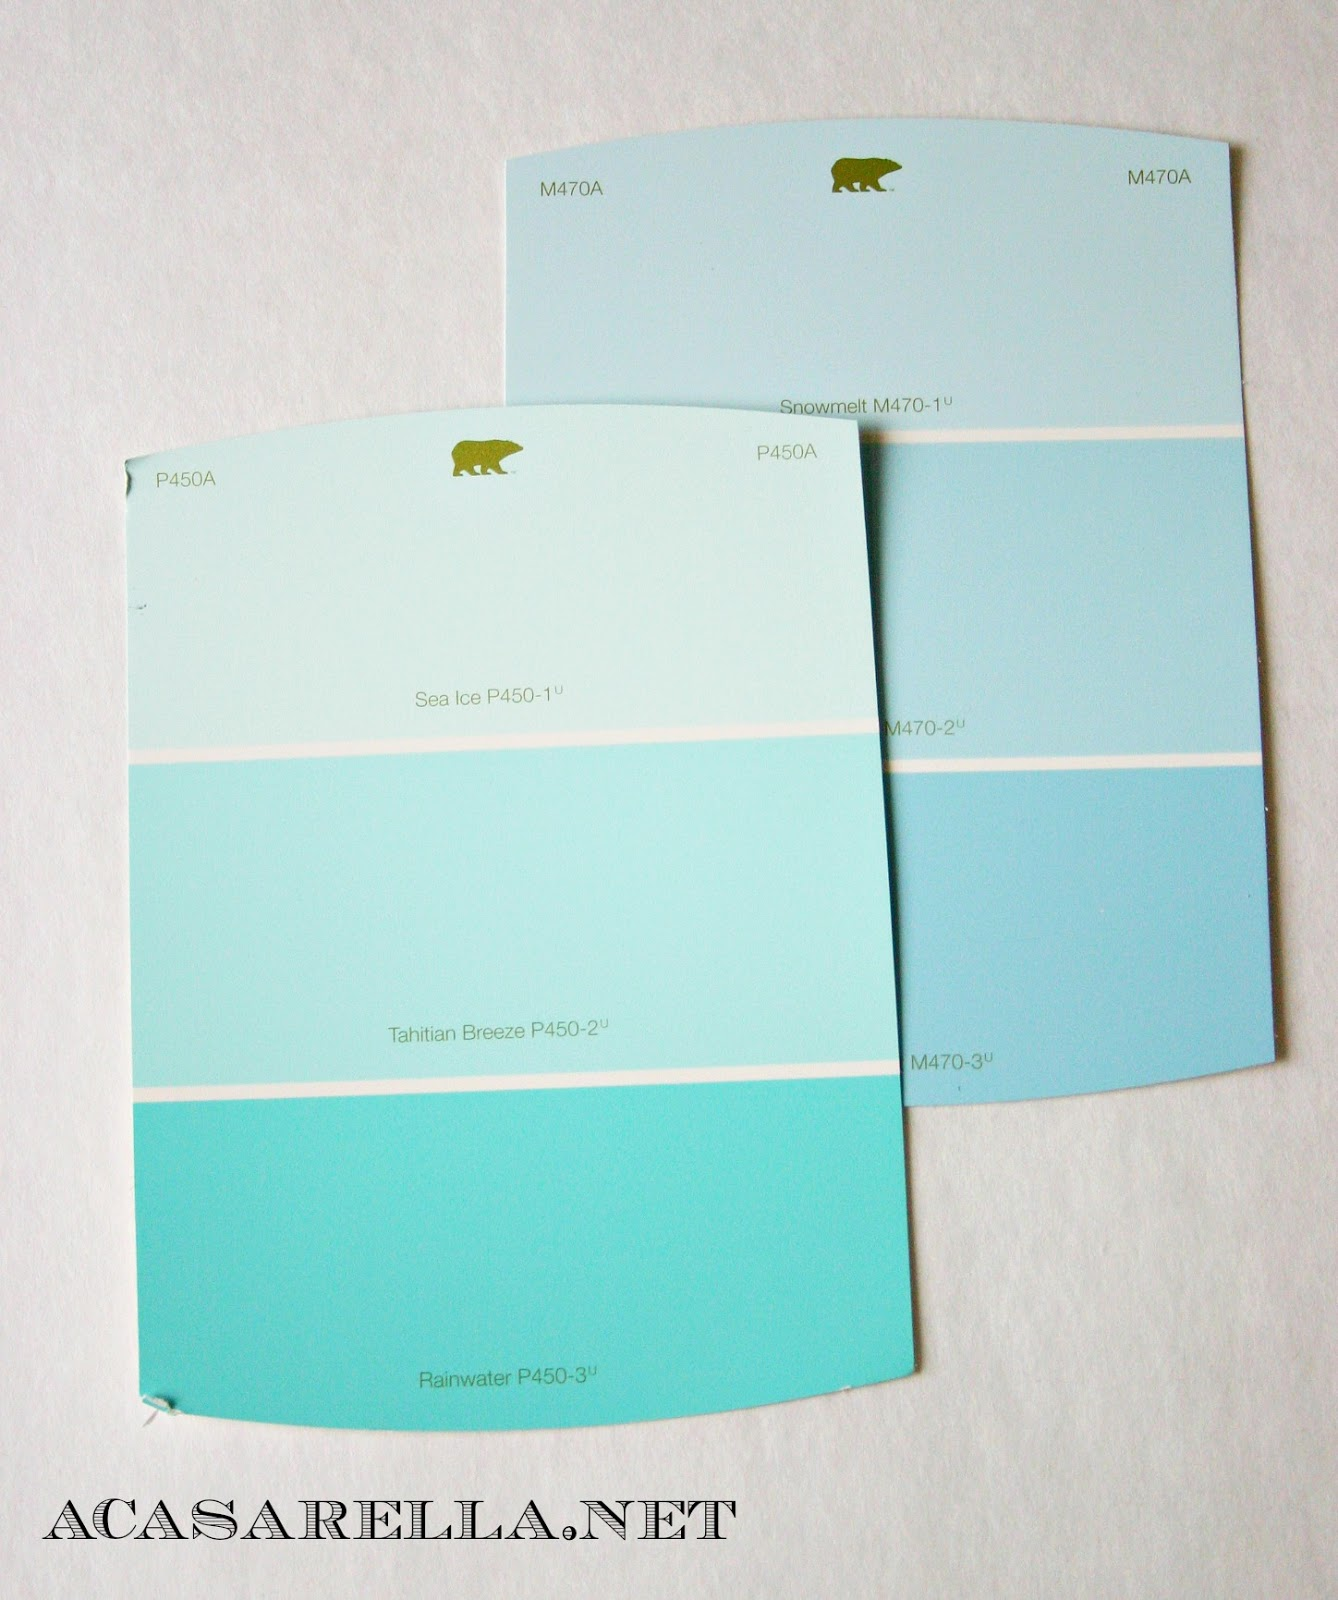 paint chip gift tags | 'a casarella